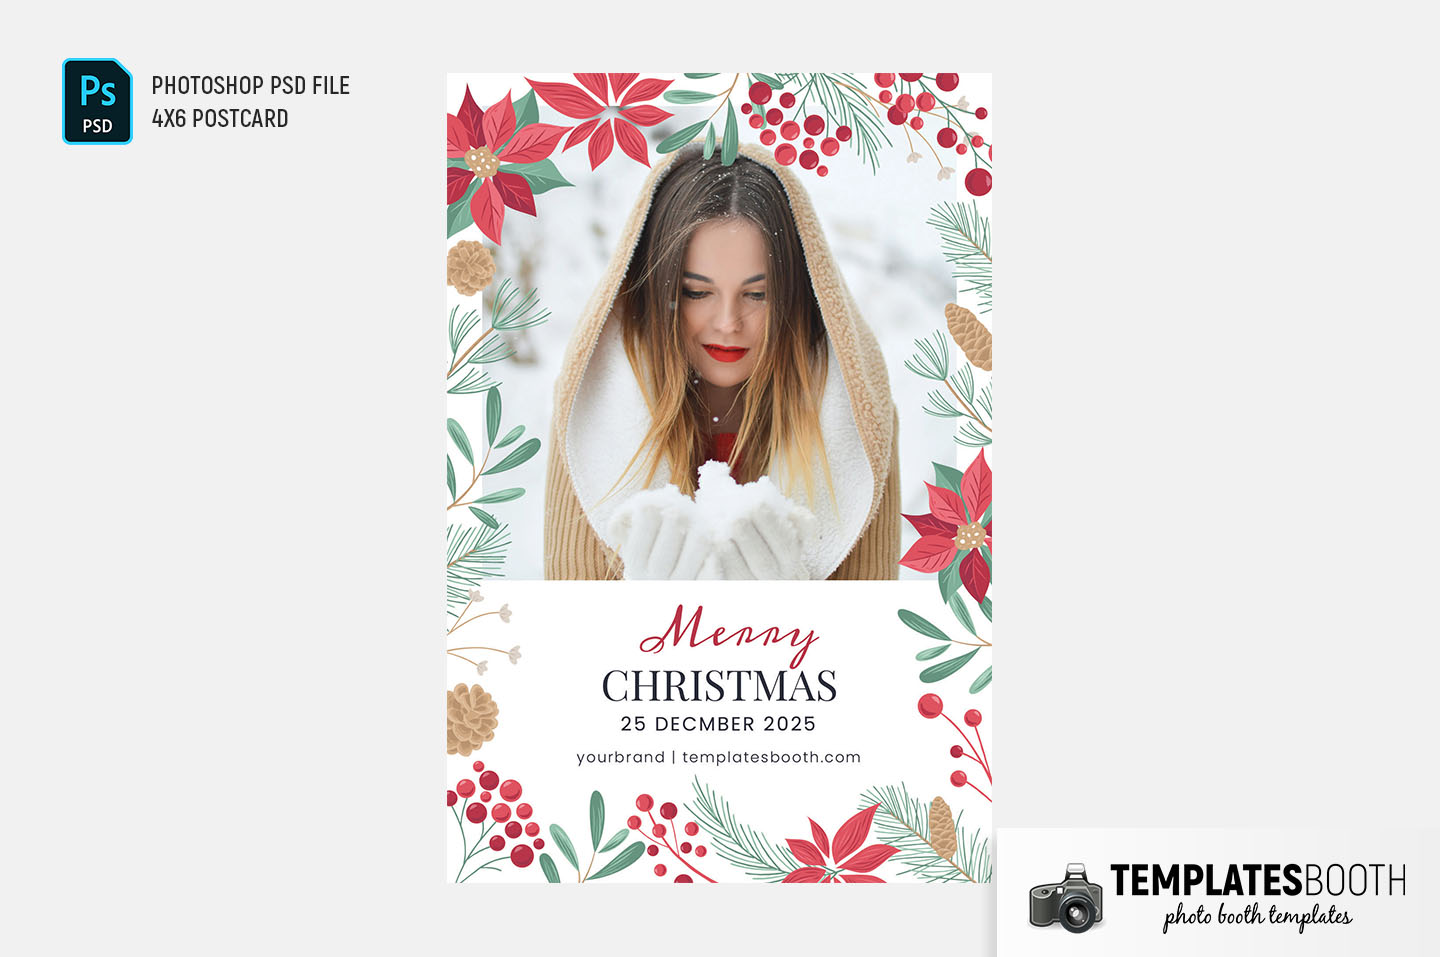 Elegant Christmas Photo Booth Template